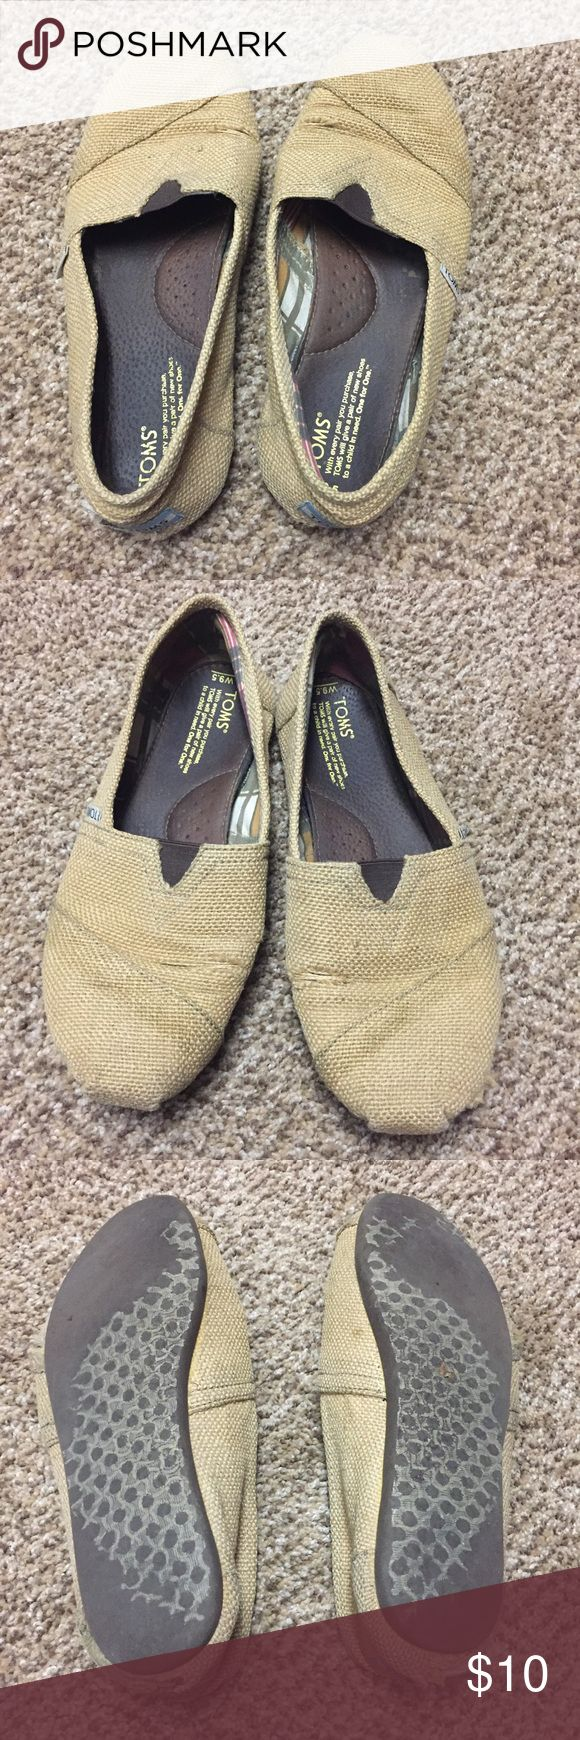 Burlap Toms Burlap Classic Toms - size 9.5 - lots of wear (see photos) Toms Shoes Flats & Loafers